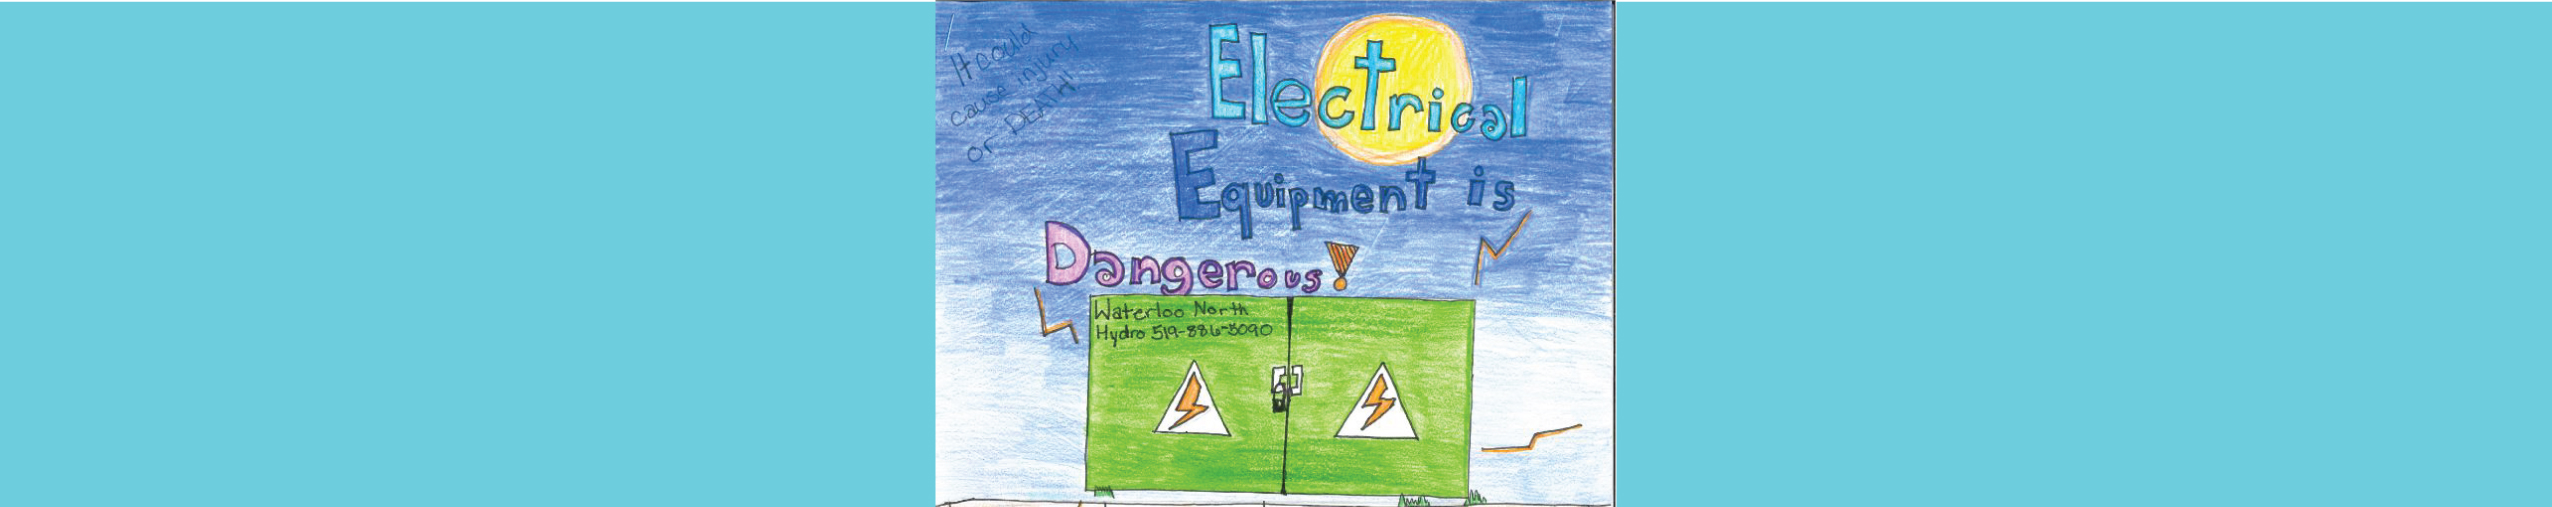 Electrical Equipment Can Be Dangerous